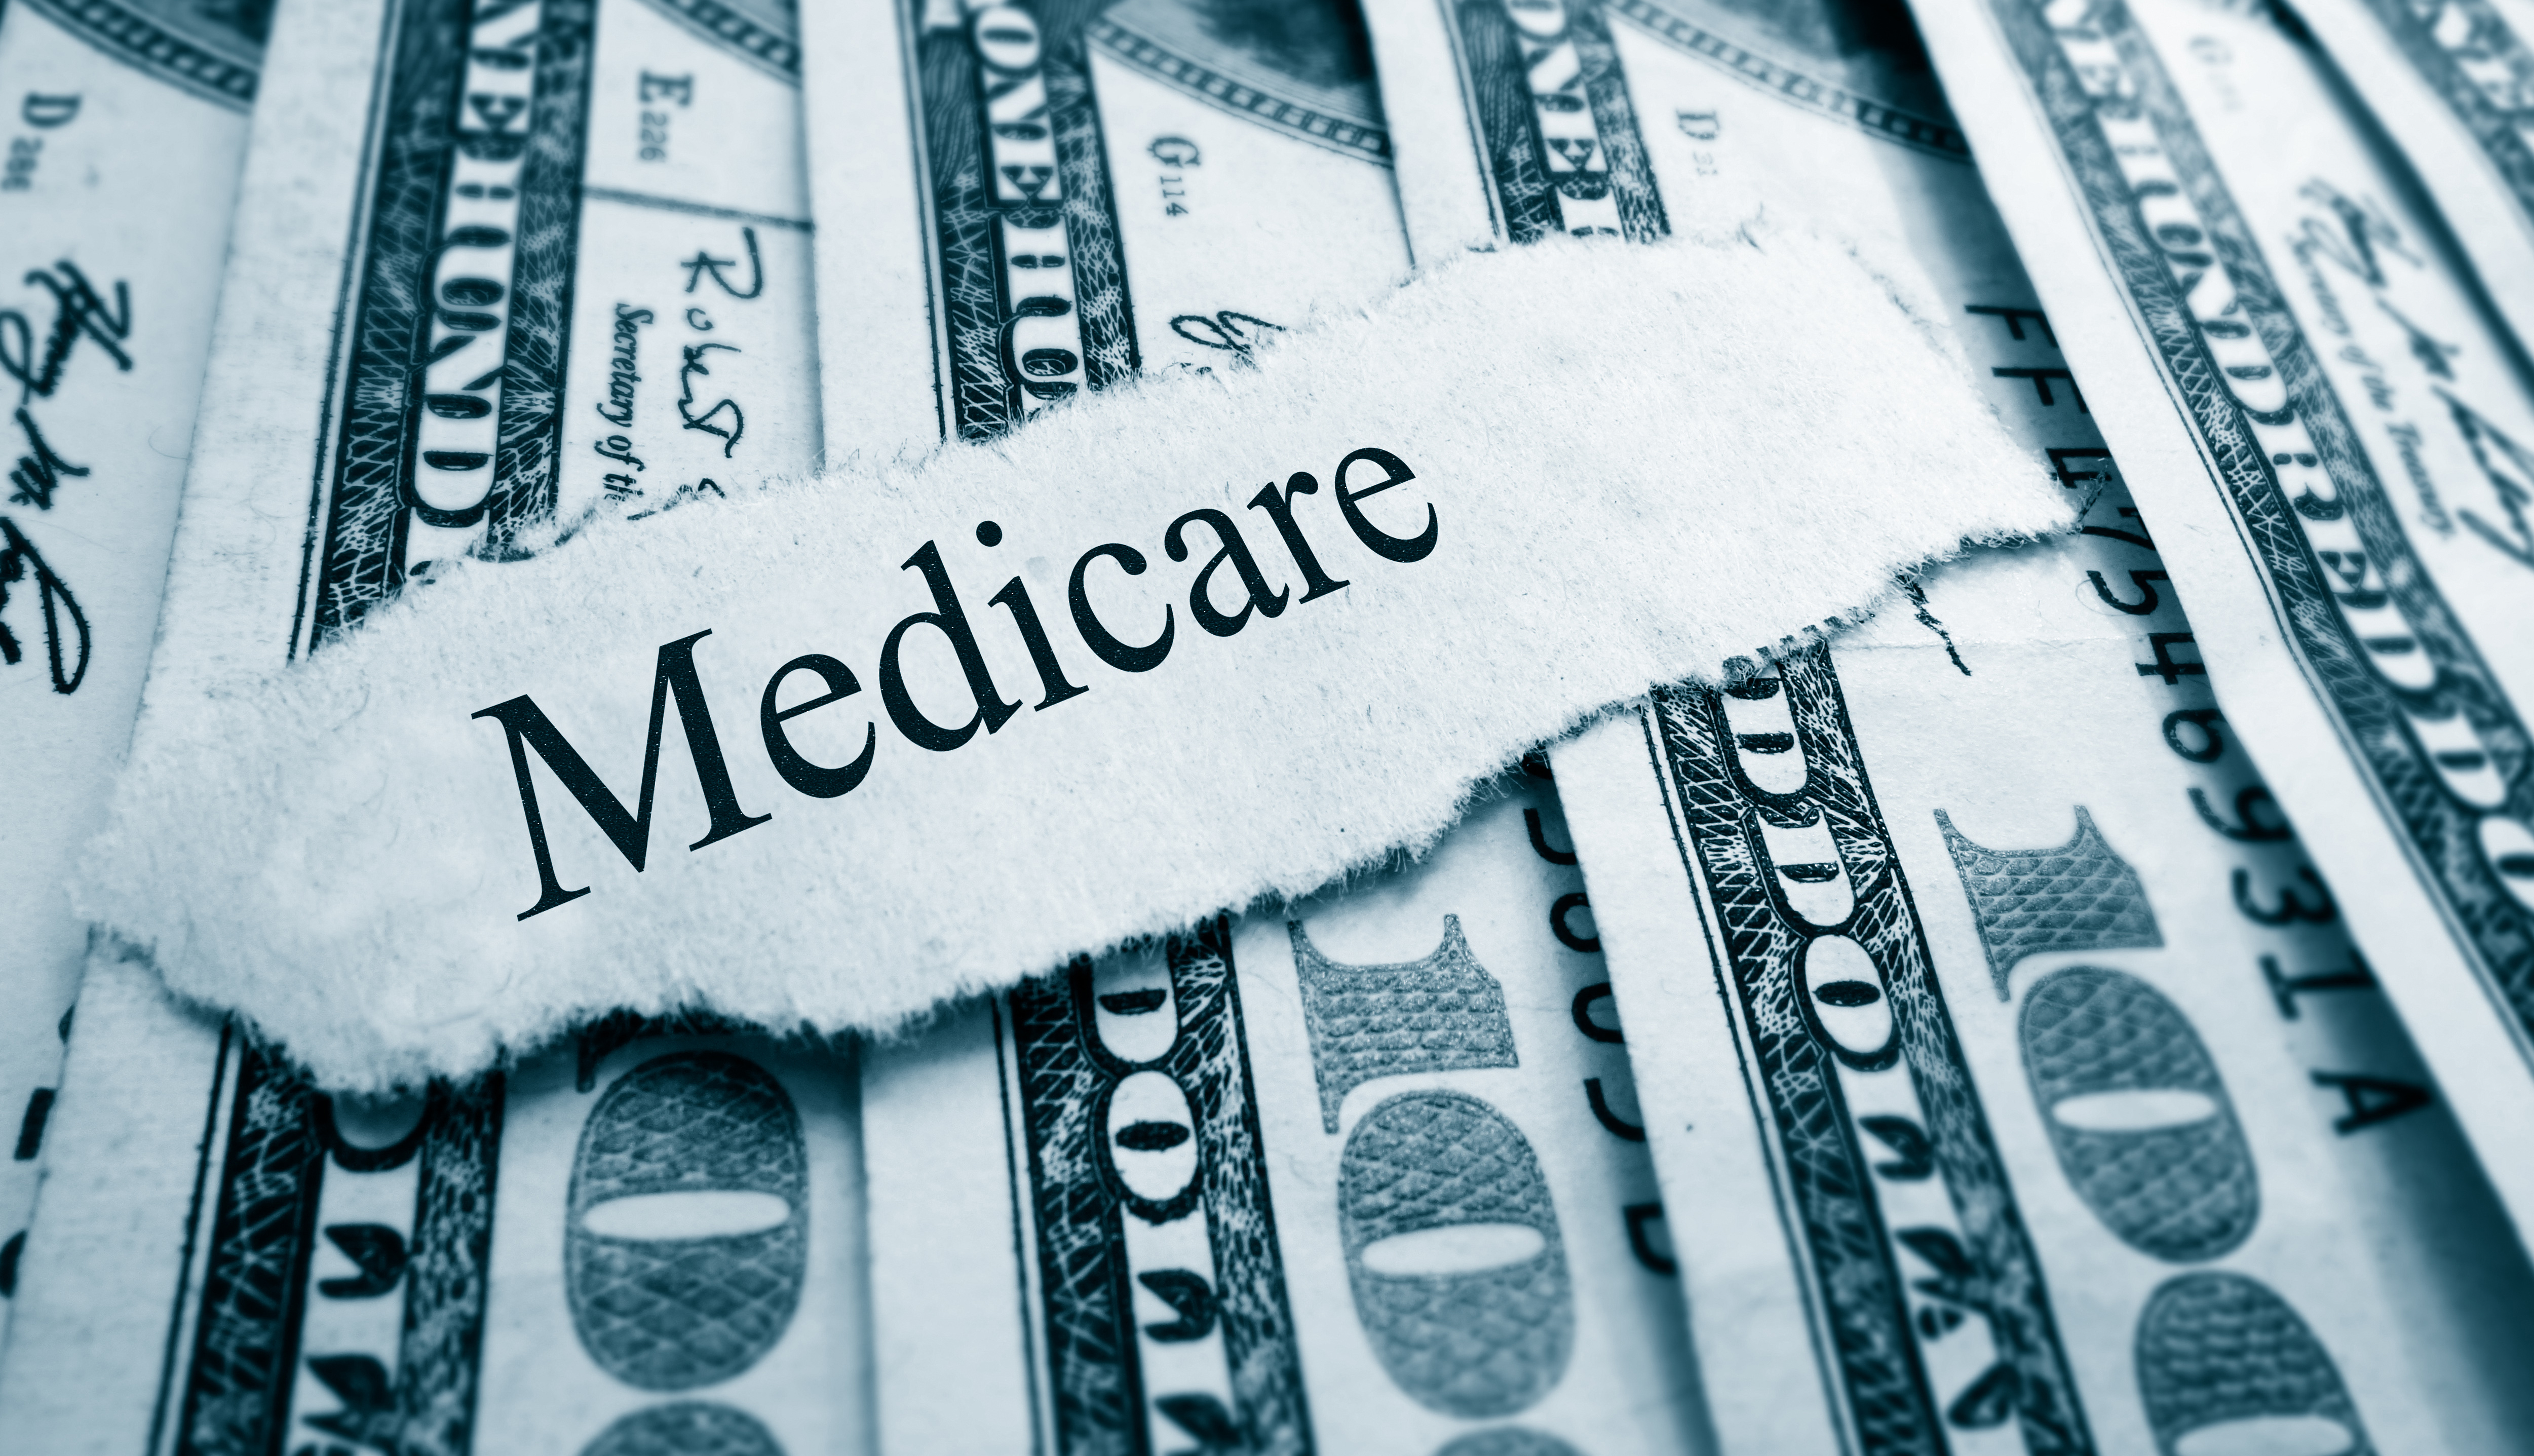 Medicare written on paper sitting on top of money